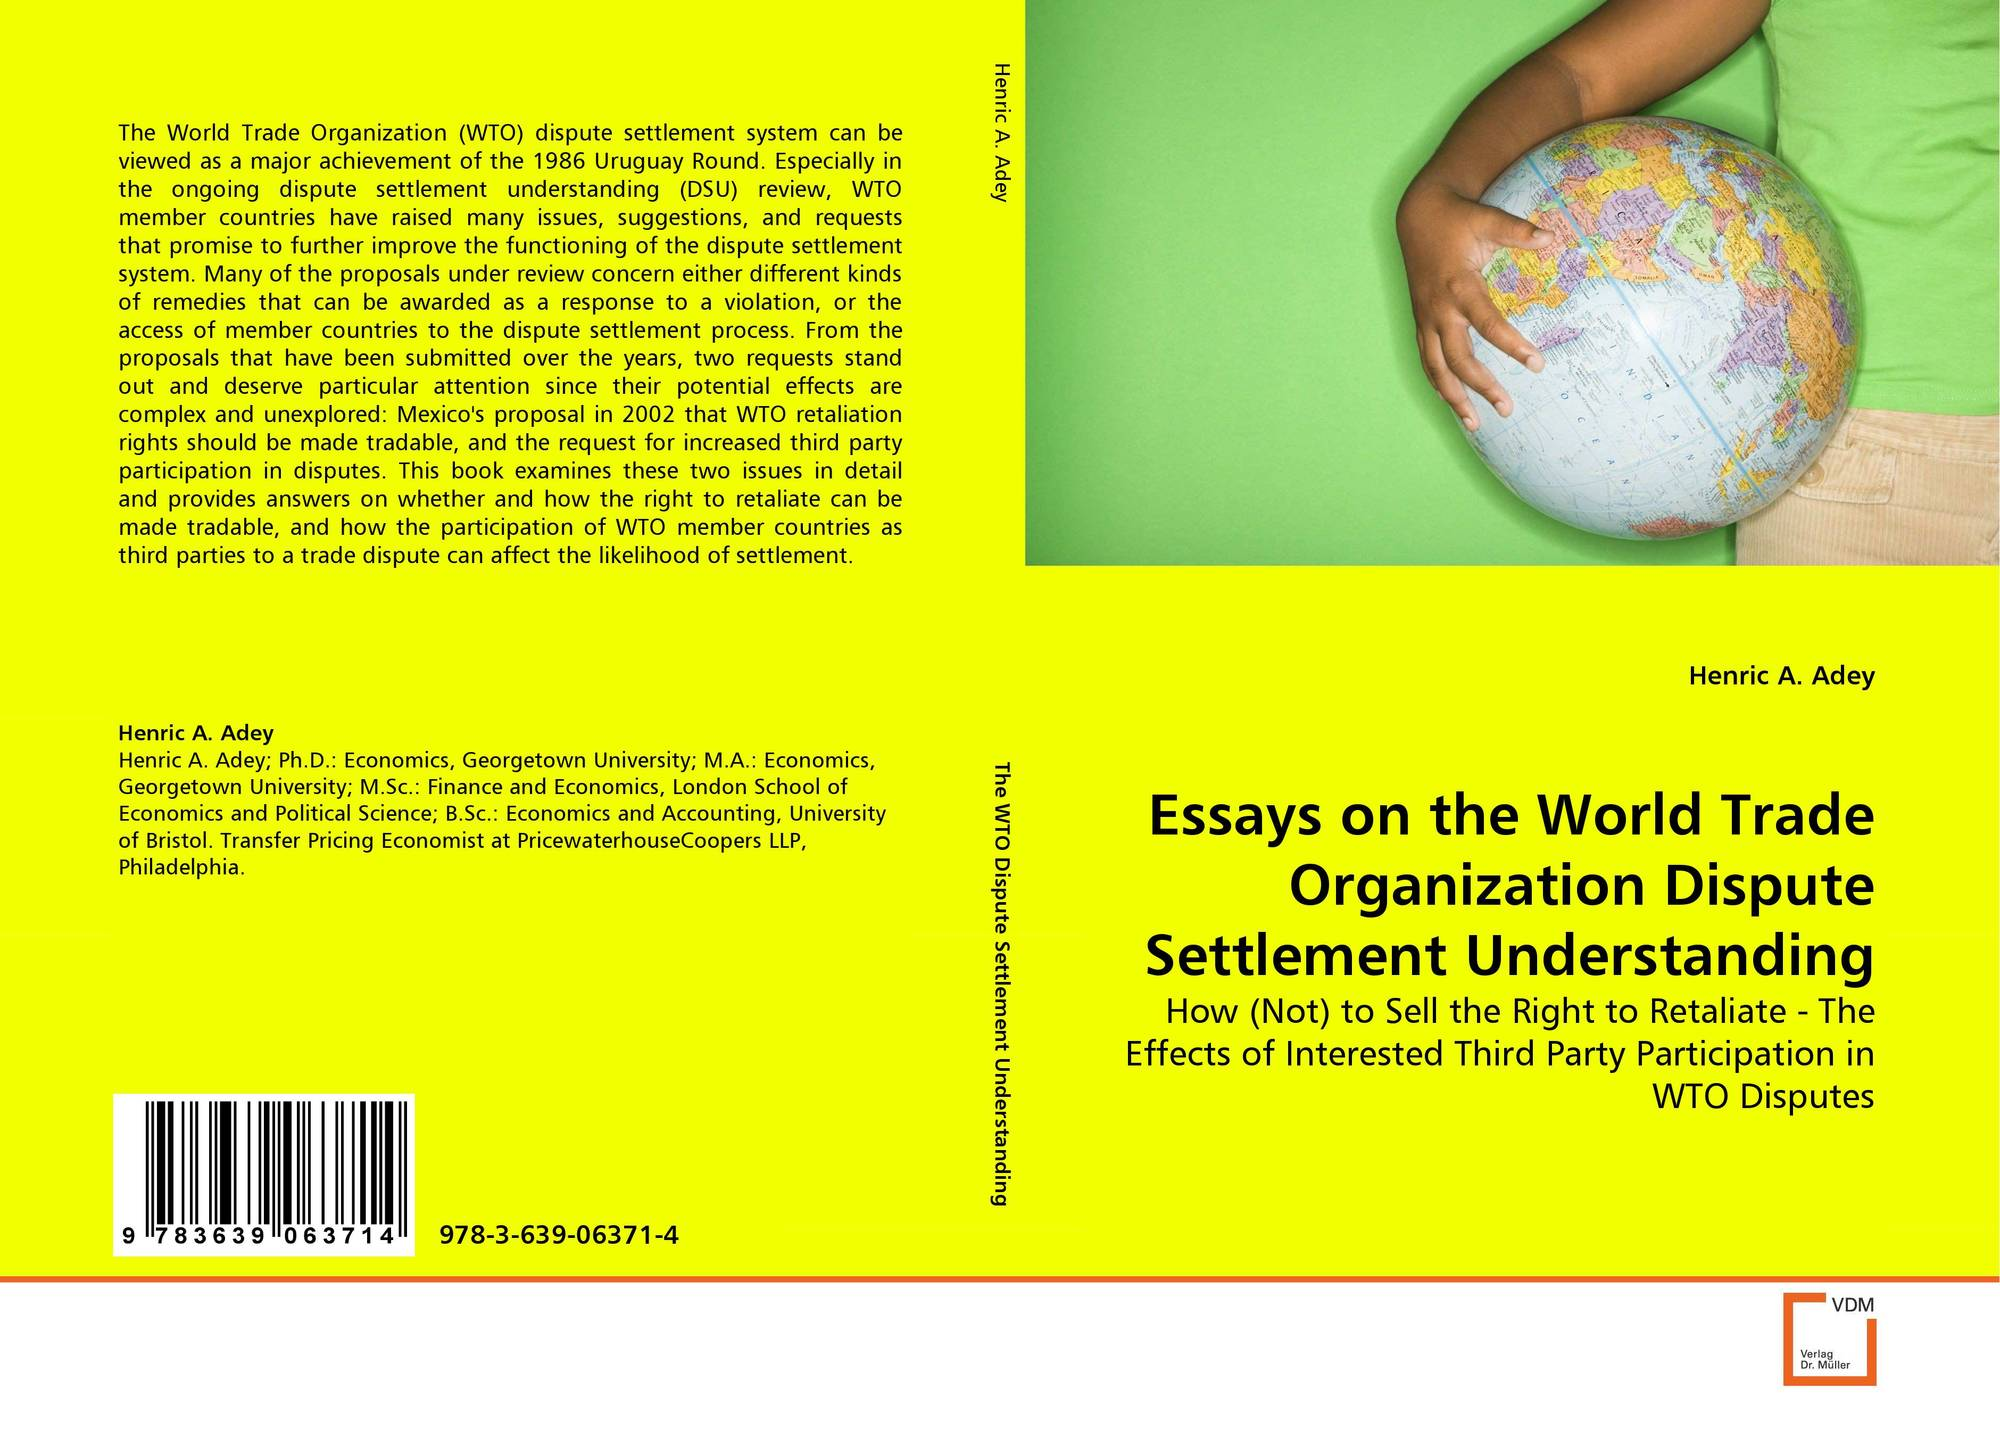 essay about world trade organization Established on january 1, 1995, the world trade organization (wto) is now the umbrella organization of the general agreement on tariffs and trade (gatt) gatt came into existence in 1947 with the intentions of providing the world with a forum that encouraged international trade between its.